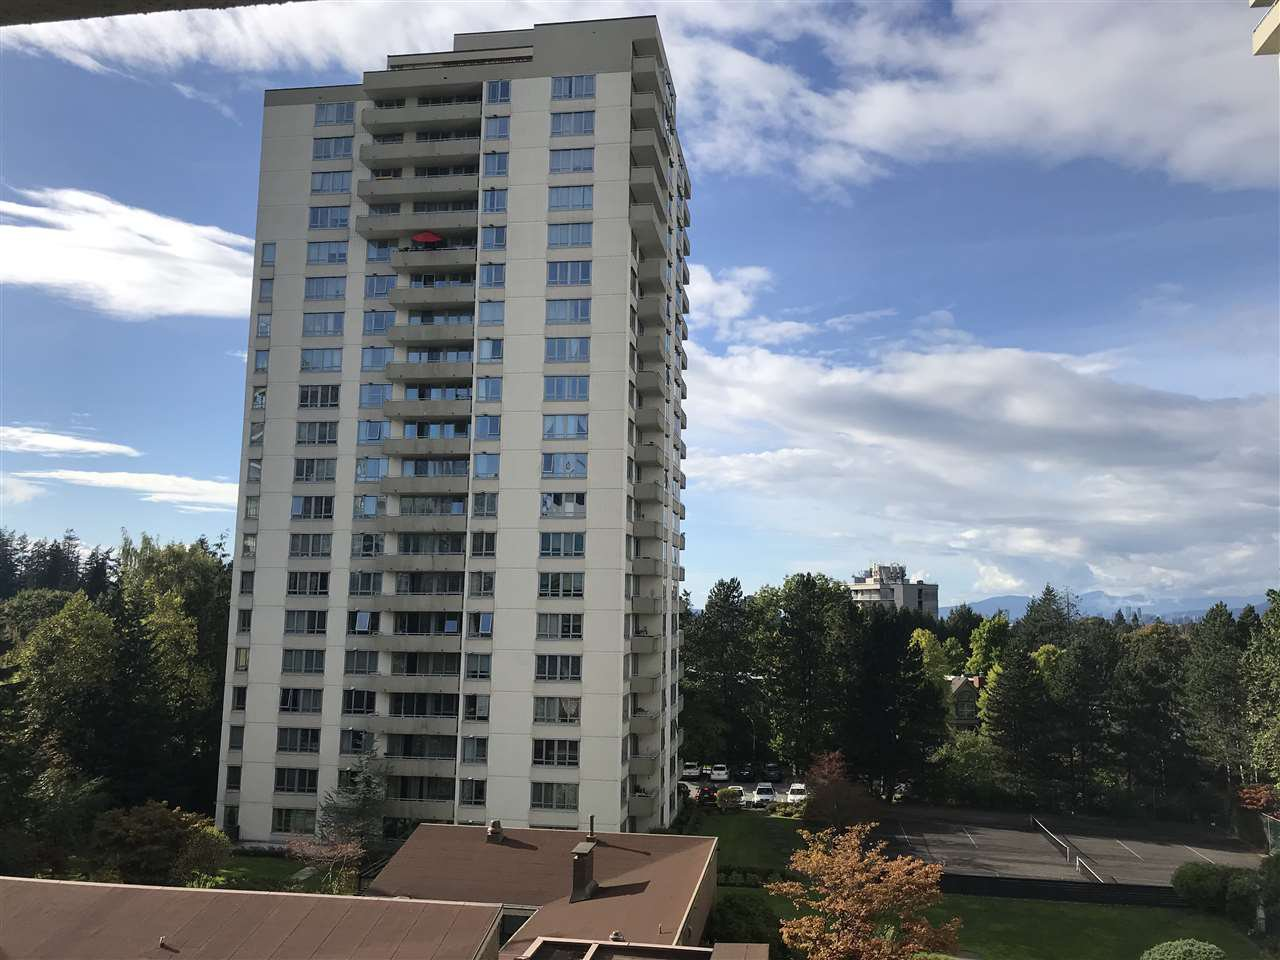 Main Photo: 501 5645 BARKER Avenue in Burnaby: Central Park BS Condo for sale (Burnaby South)  : MLS®# R2507504